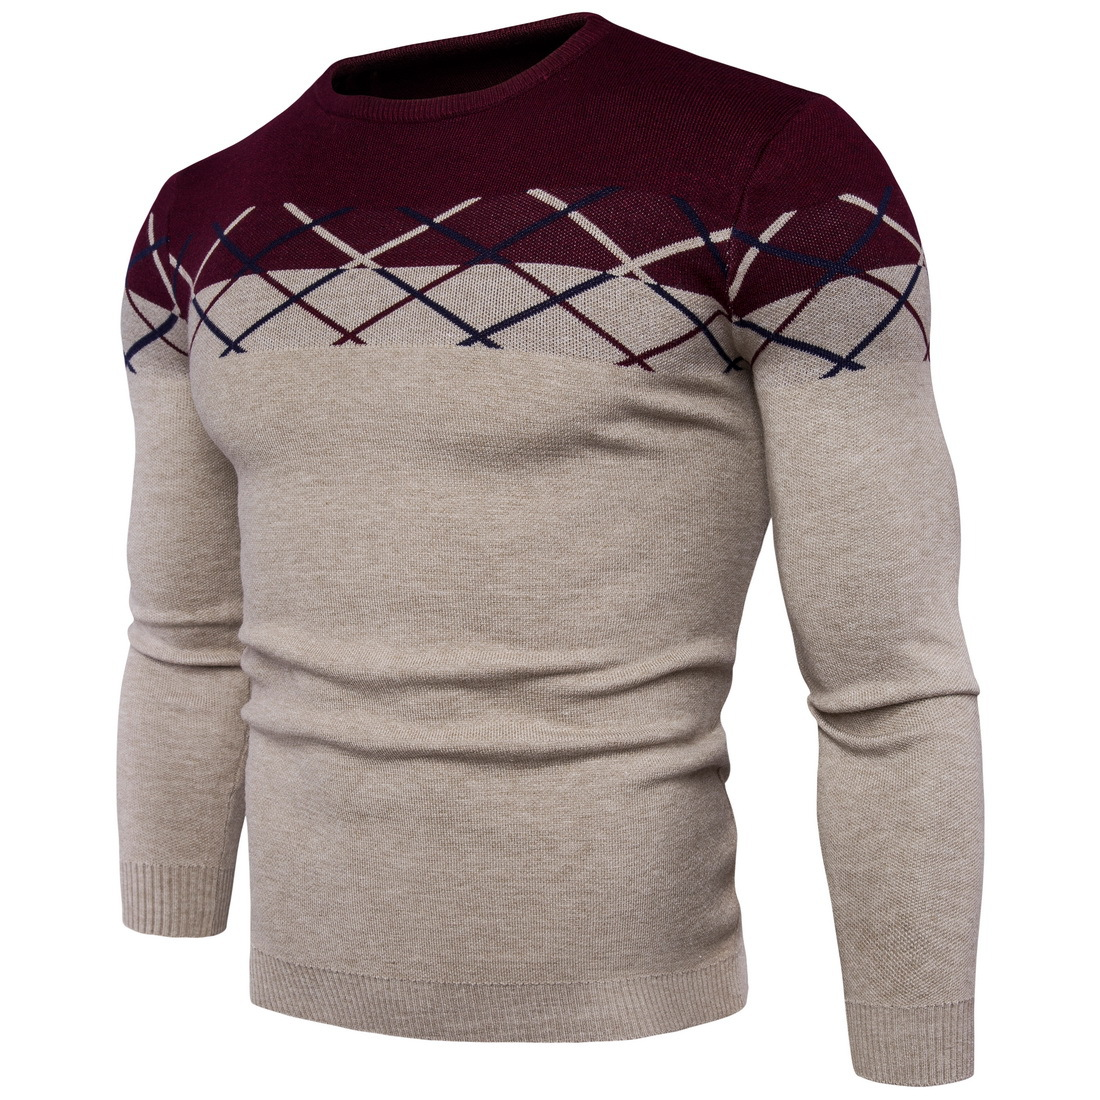 2017 New High Quality Pullover Sweater Men Cotton Computer Knitted Fashion Splicing Casual Mens Sweater Y964